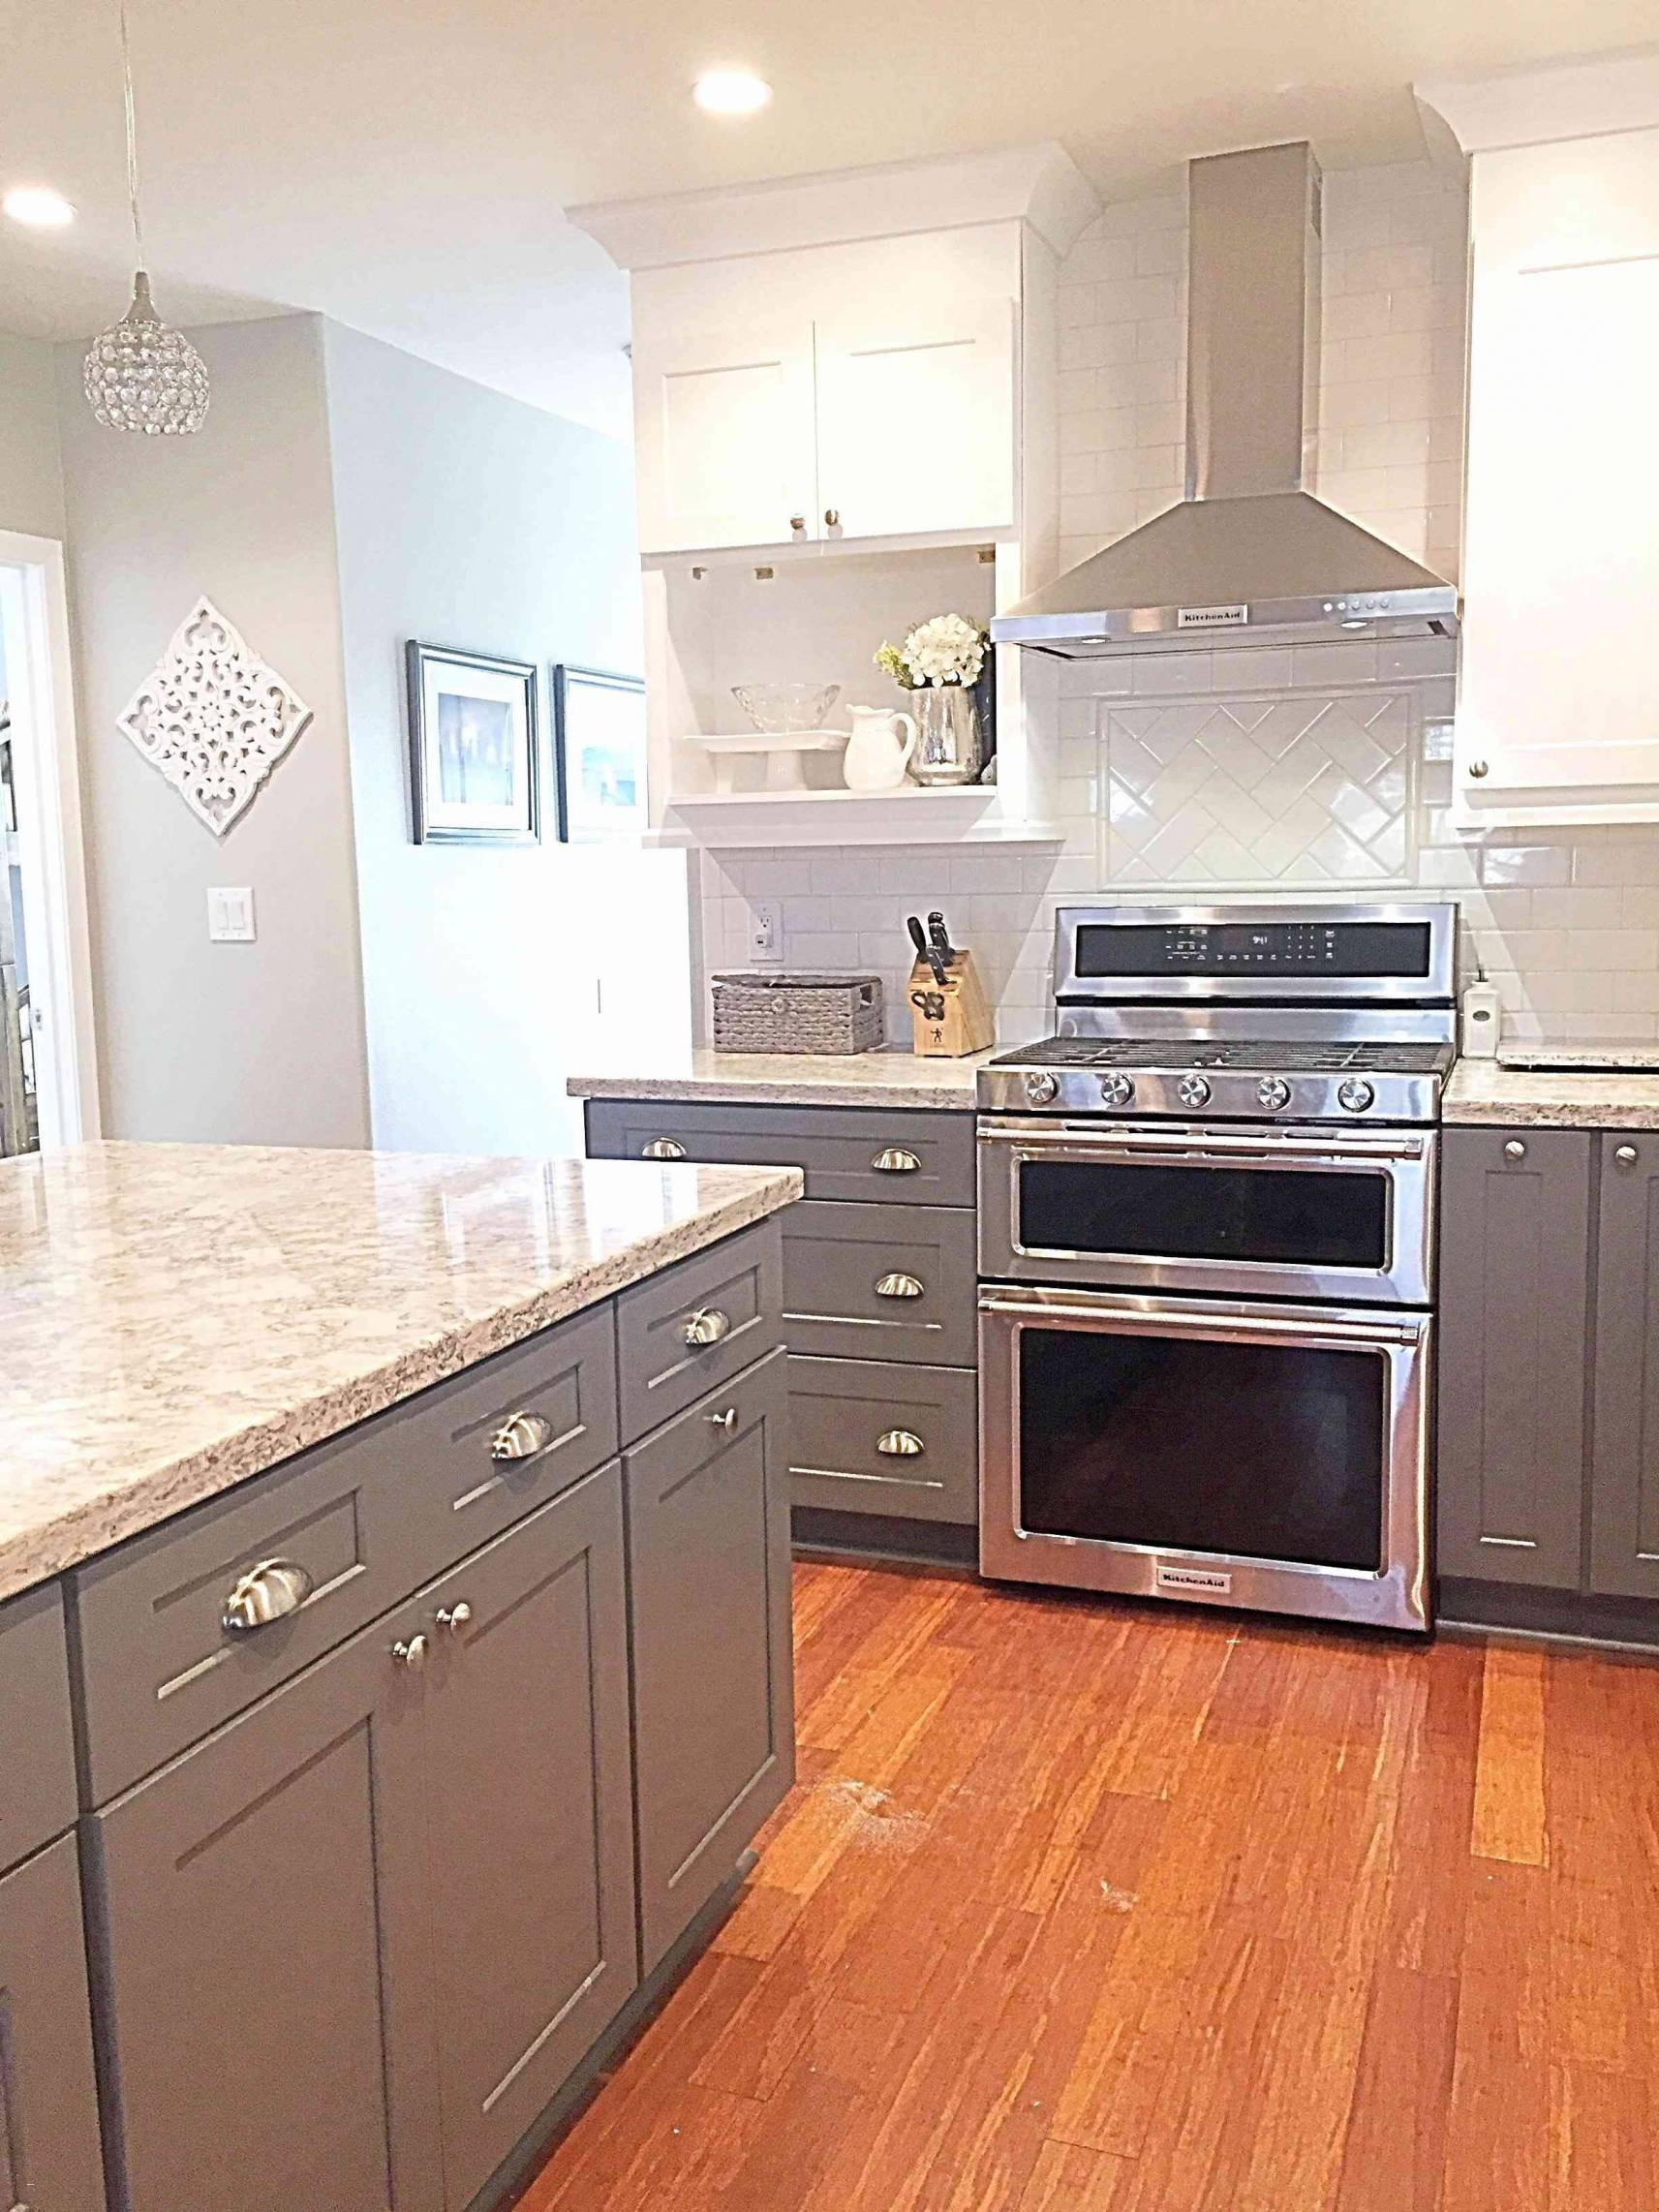 hardwood floor installation monmouth county nj of 15 kitchen cabinets in monmouth county nj images umfilipequalquer com throughout monmouth county nj ideas refinish kitchen cabinets ideas fresh 27 beautiful refinish kitchen cabinets ideas s